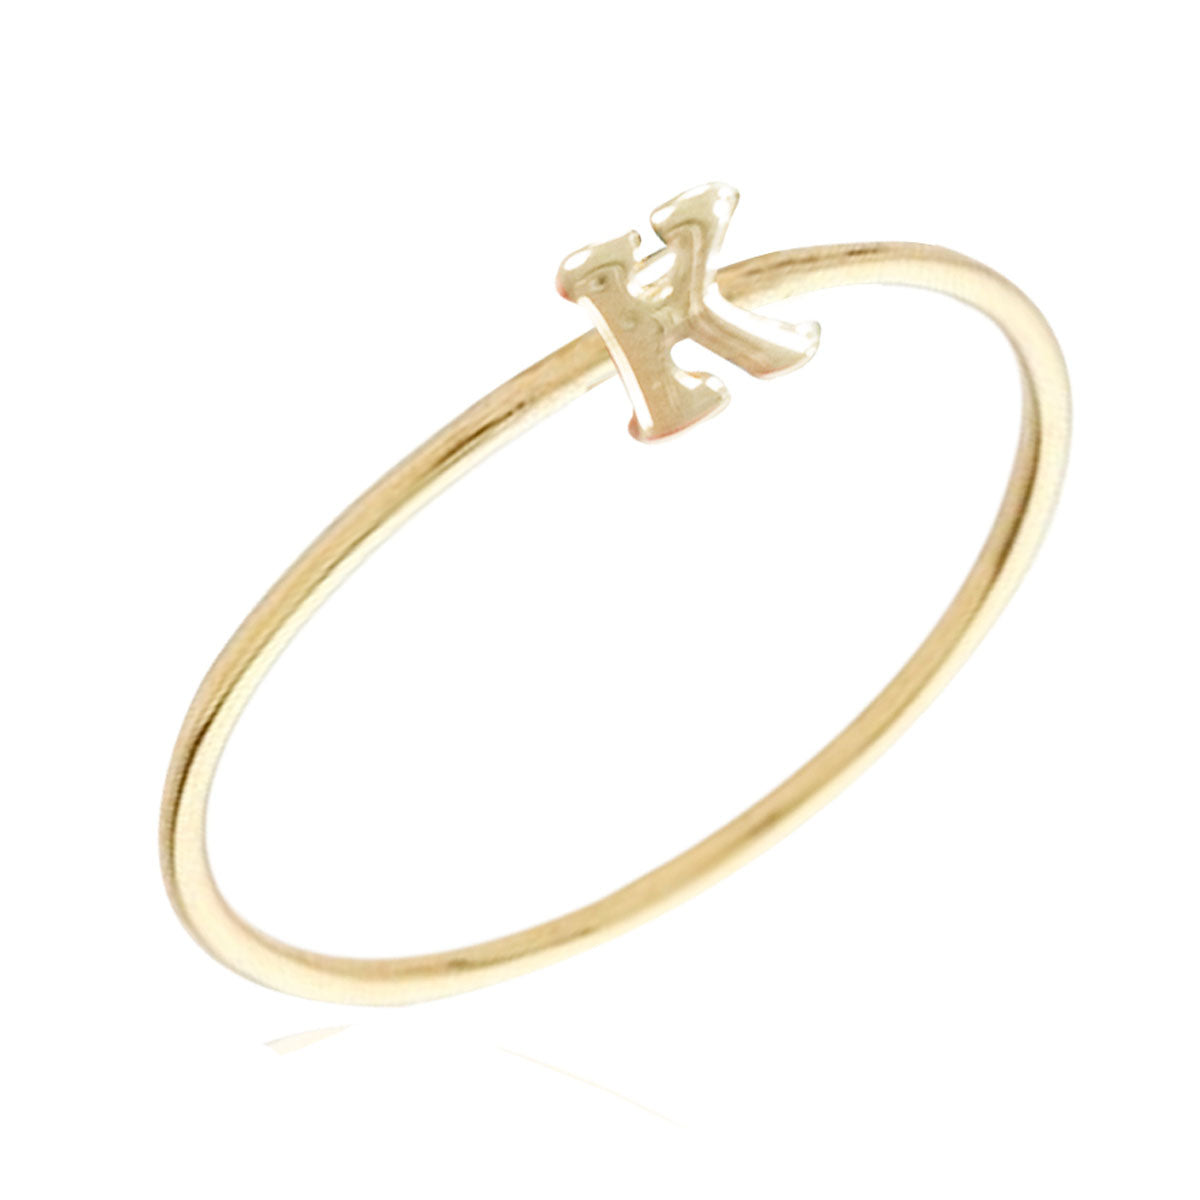 Gold Plated Stackable Initial Letter Ring Size 6